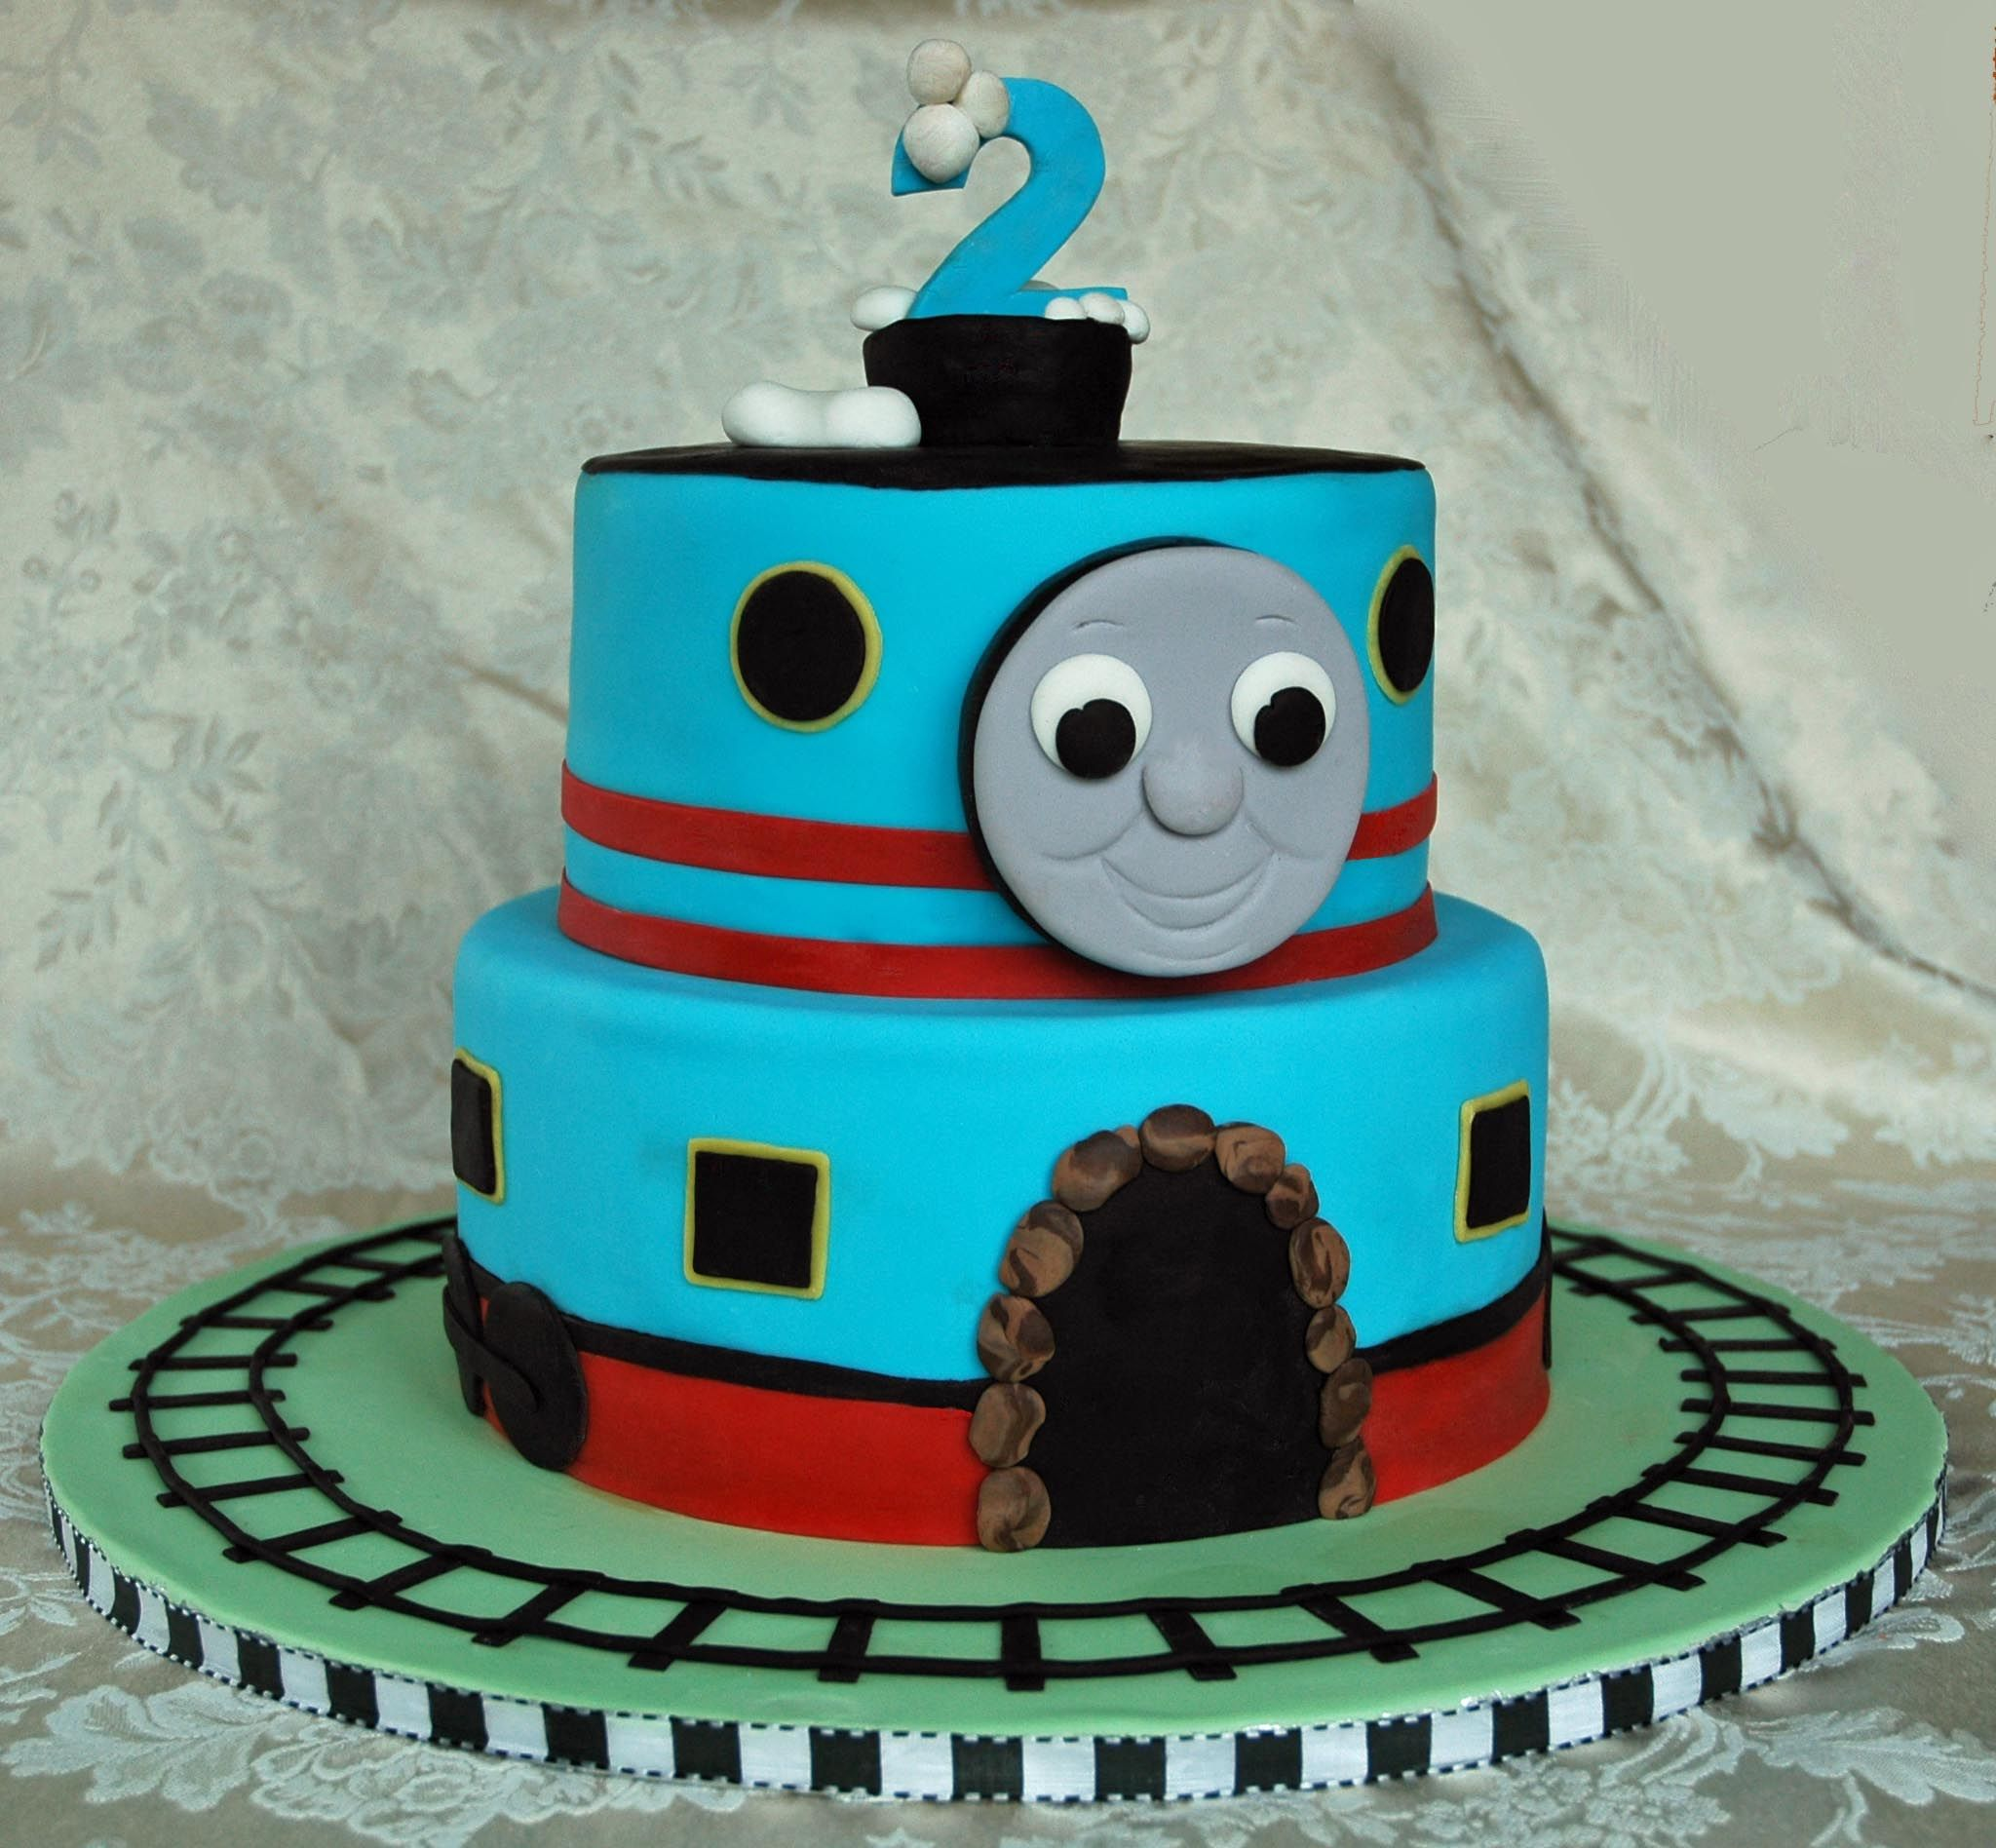 Thomas The Train Birthday Cake 1gateau